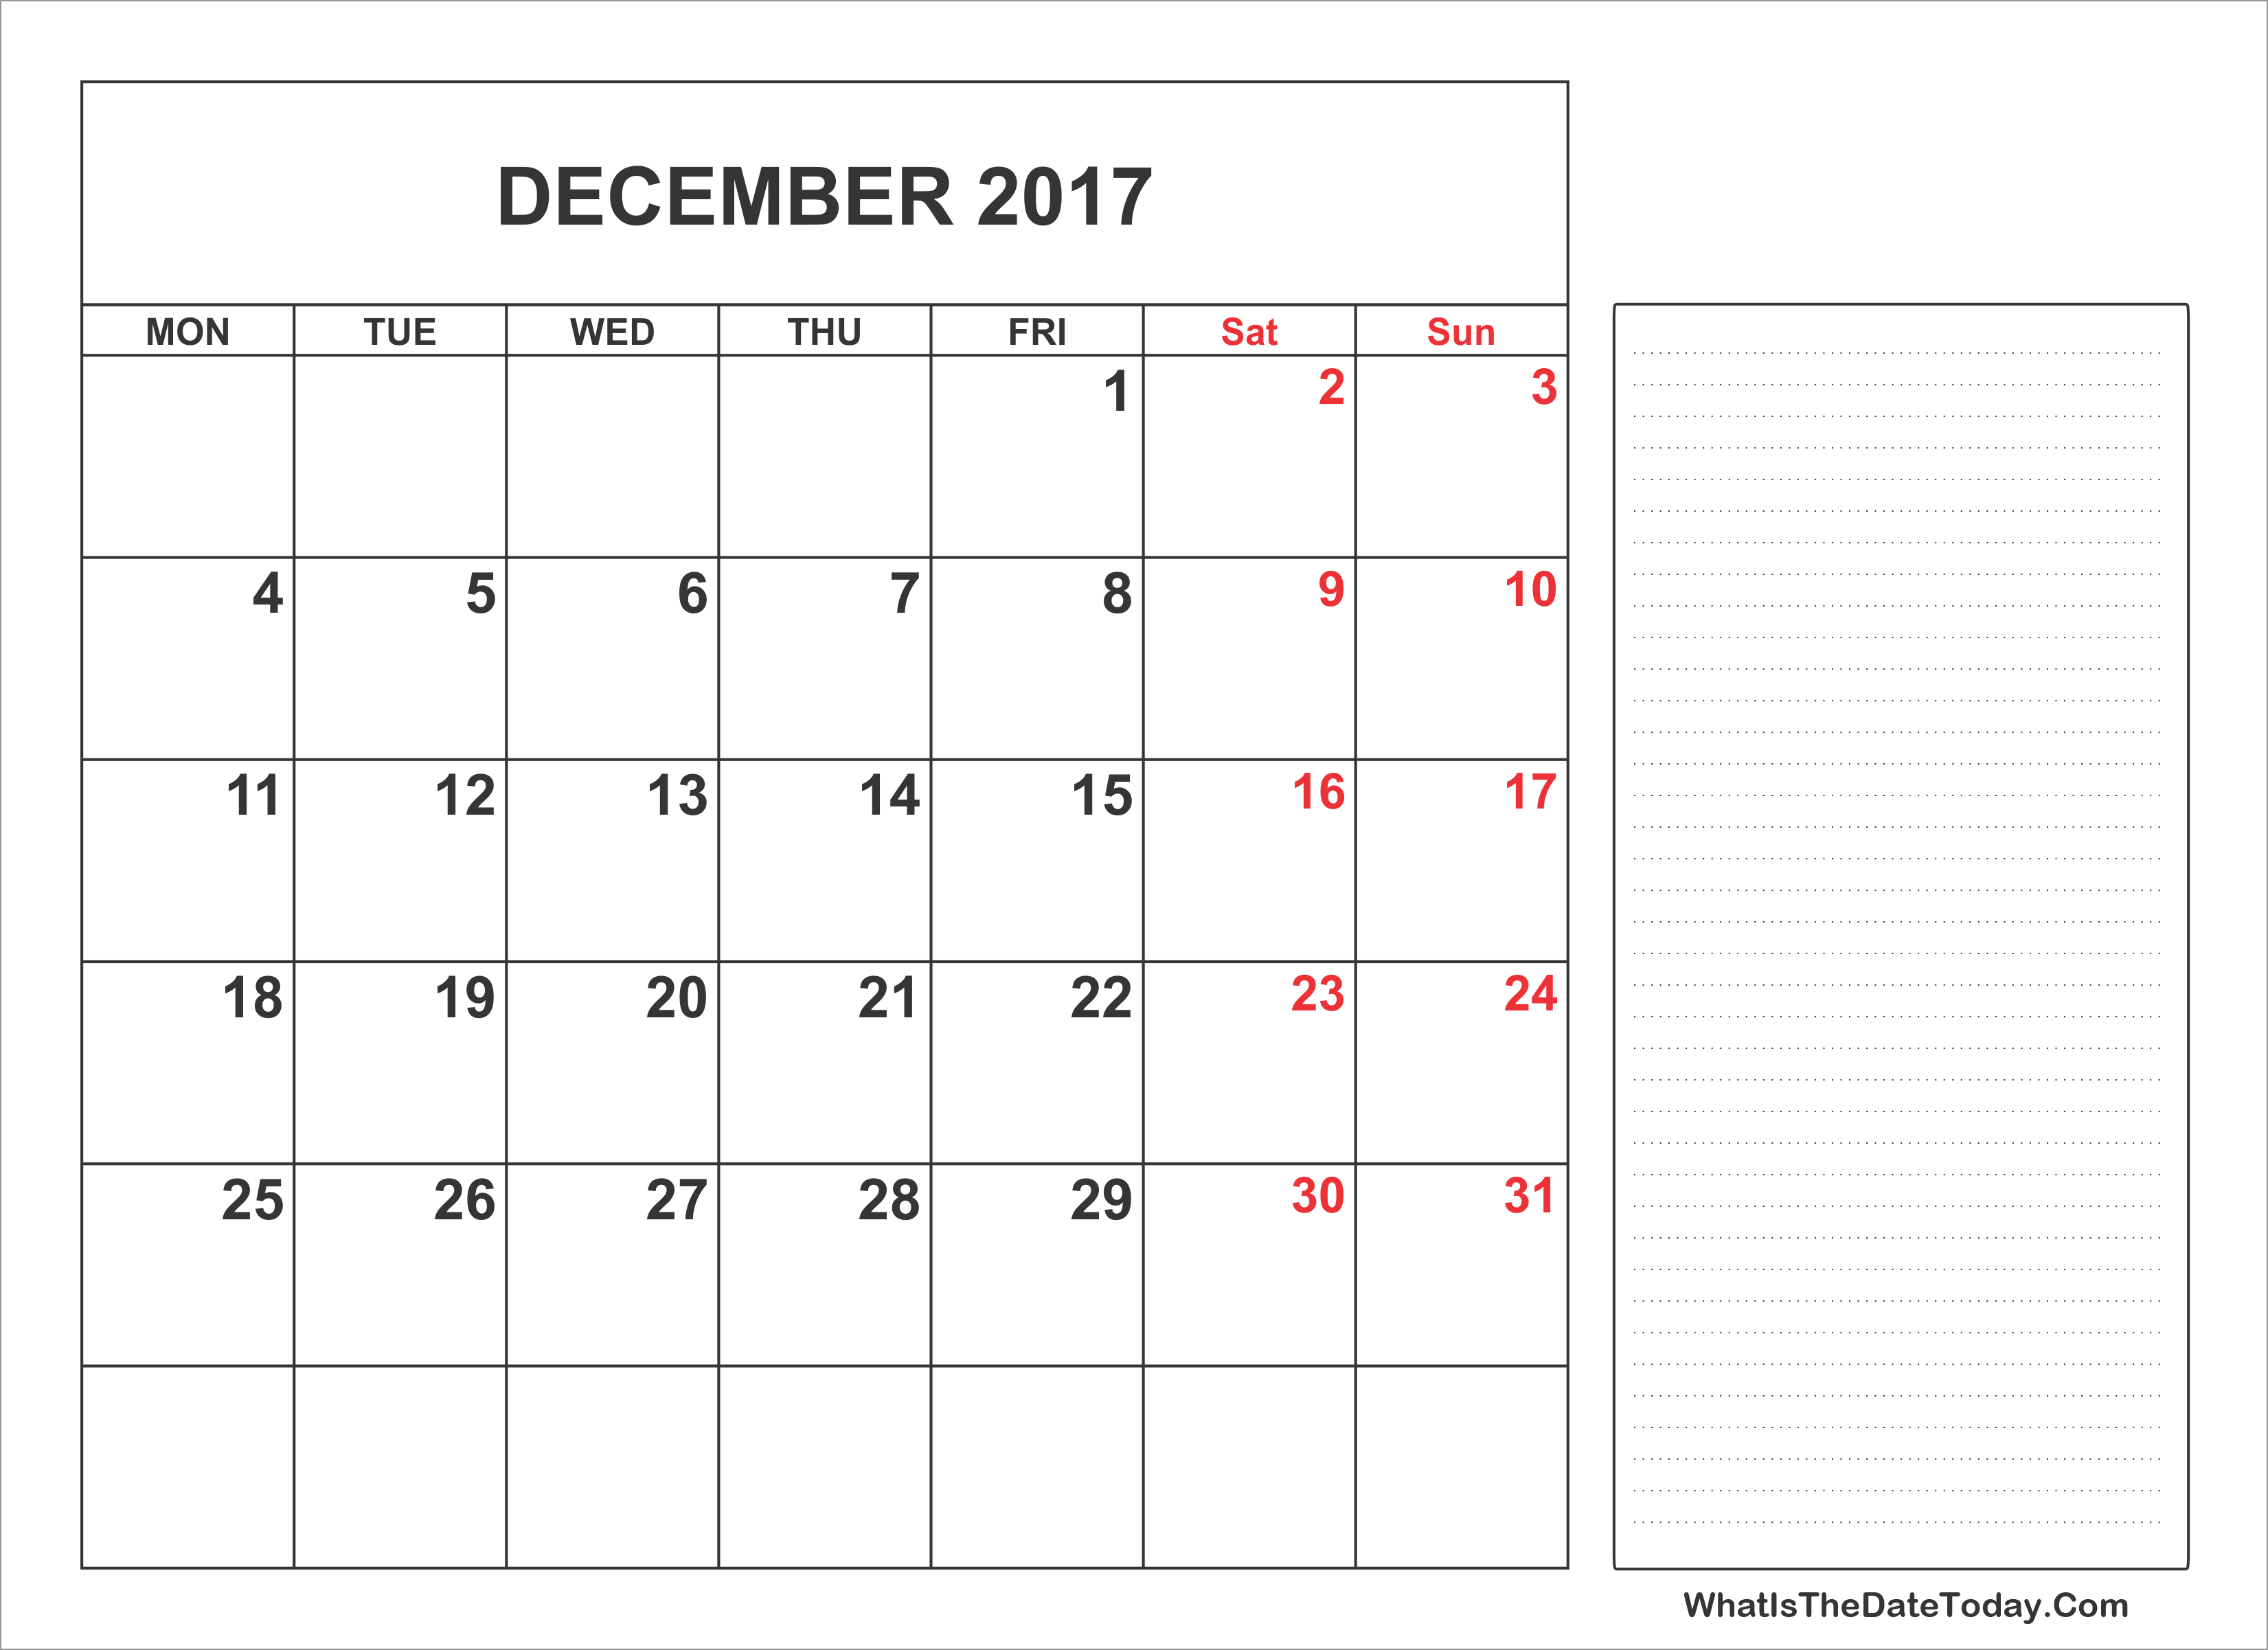 December 2017 Calendar Templates Whatisthedatetoday Com